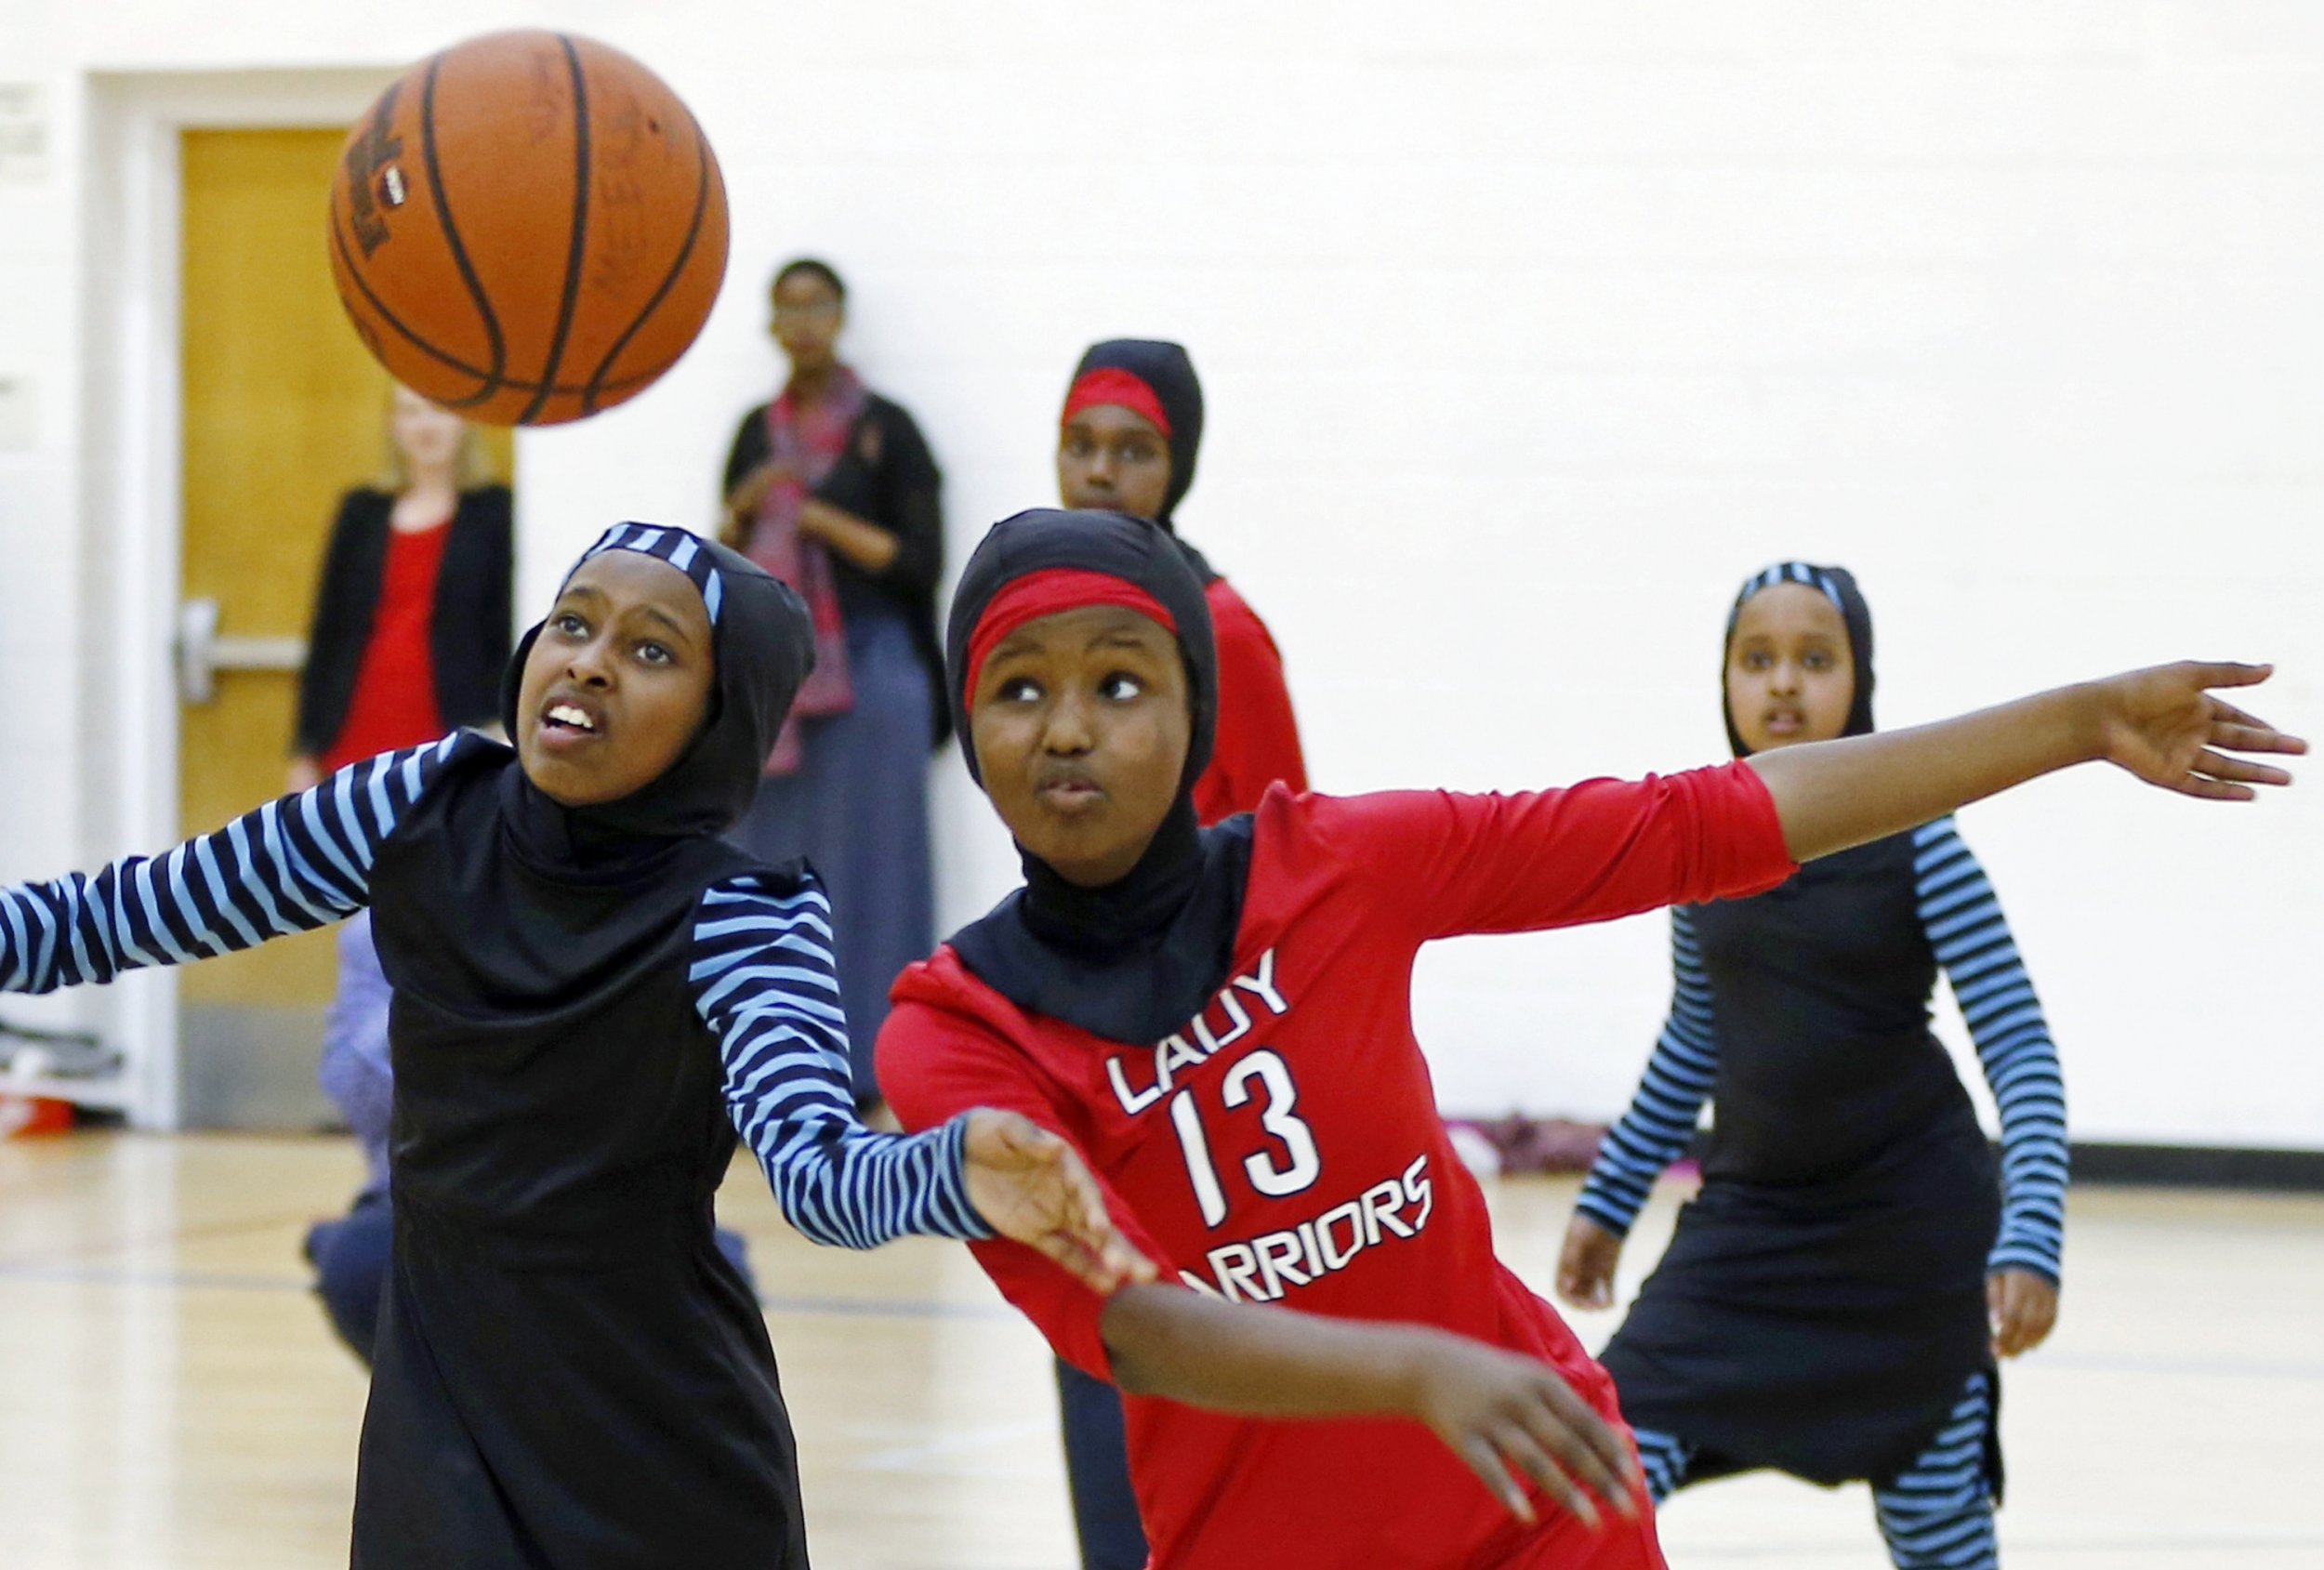 quotbasketball uniforms designed for girls with hijabs